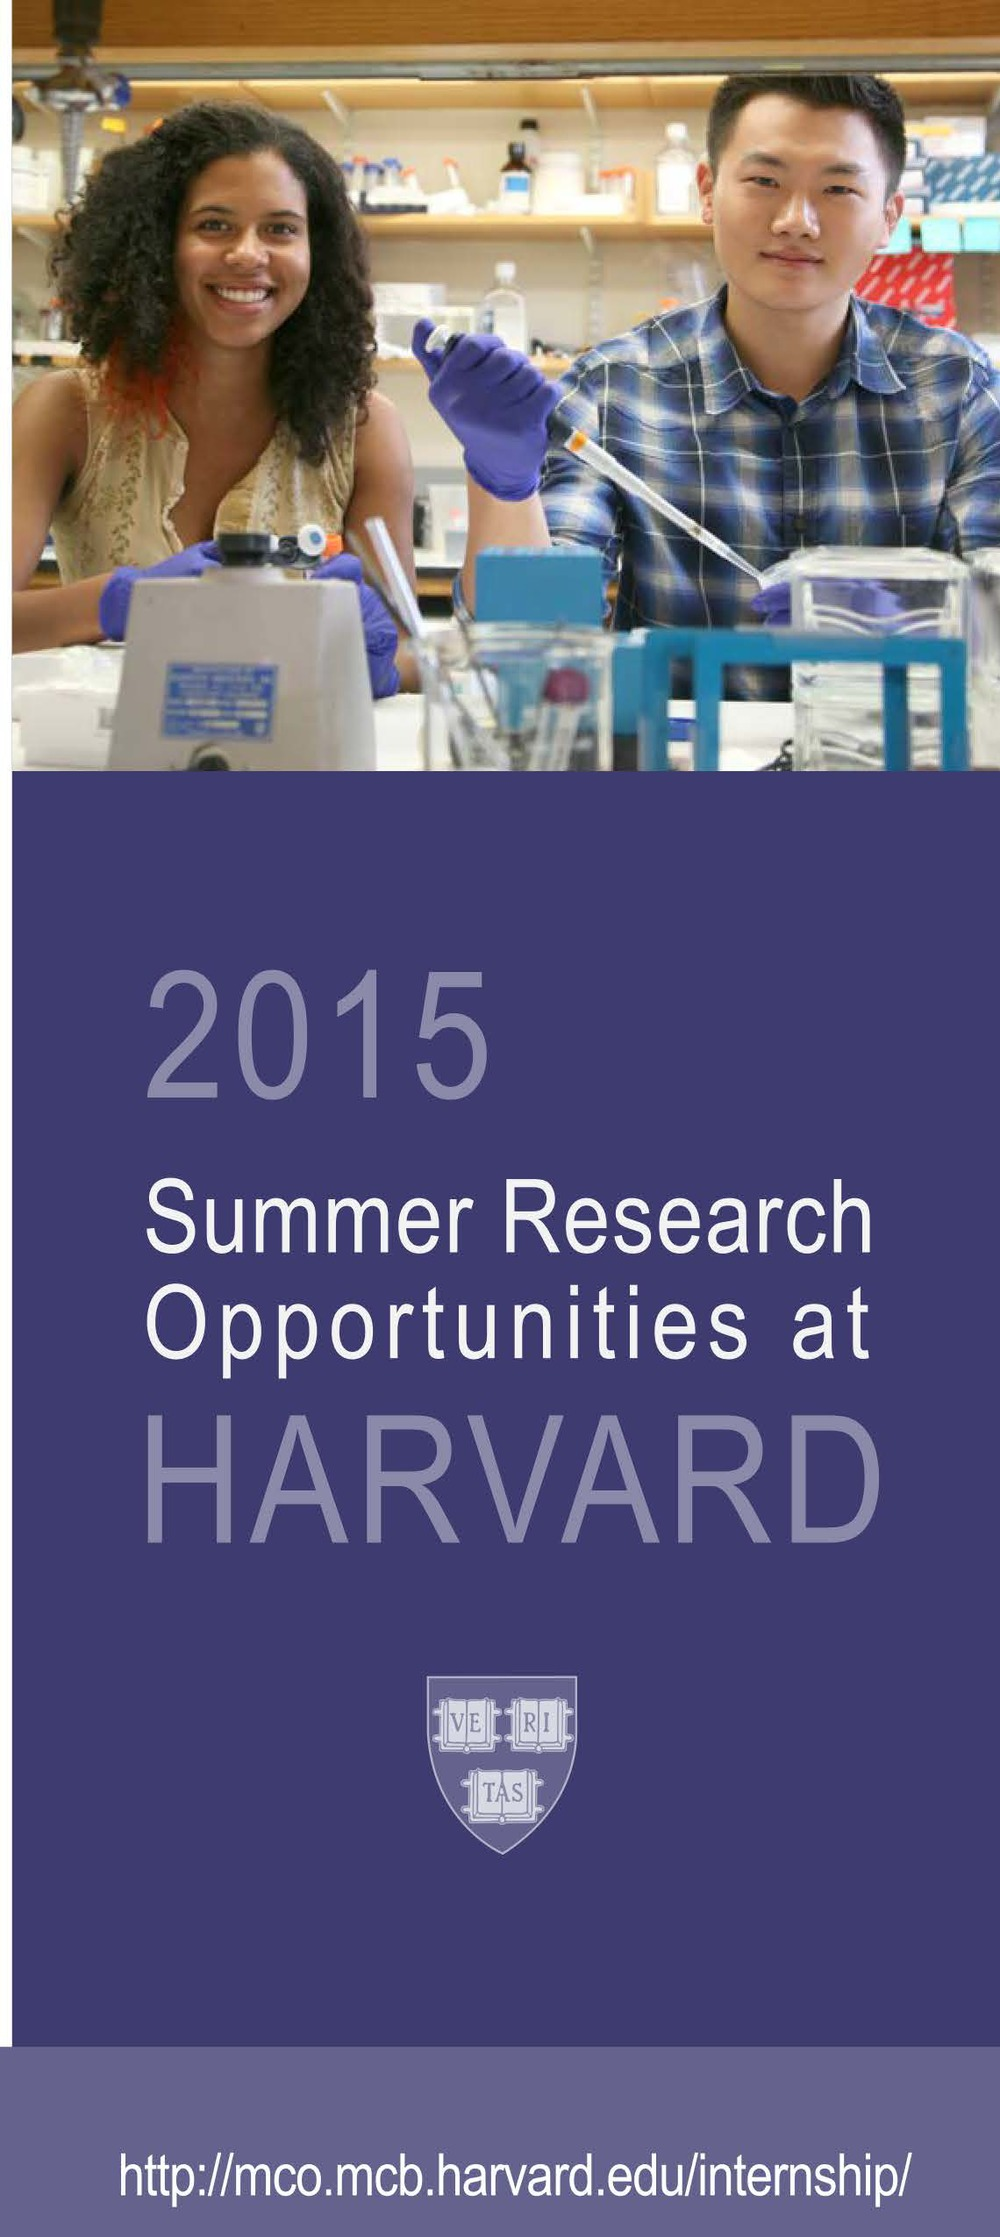 2015 Summer Research Opportunities at Harvard